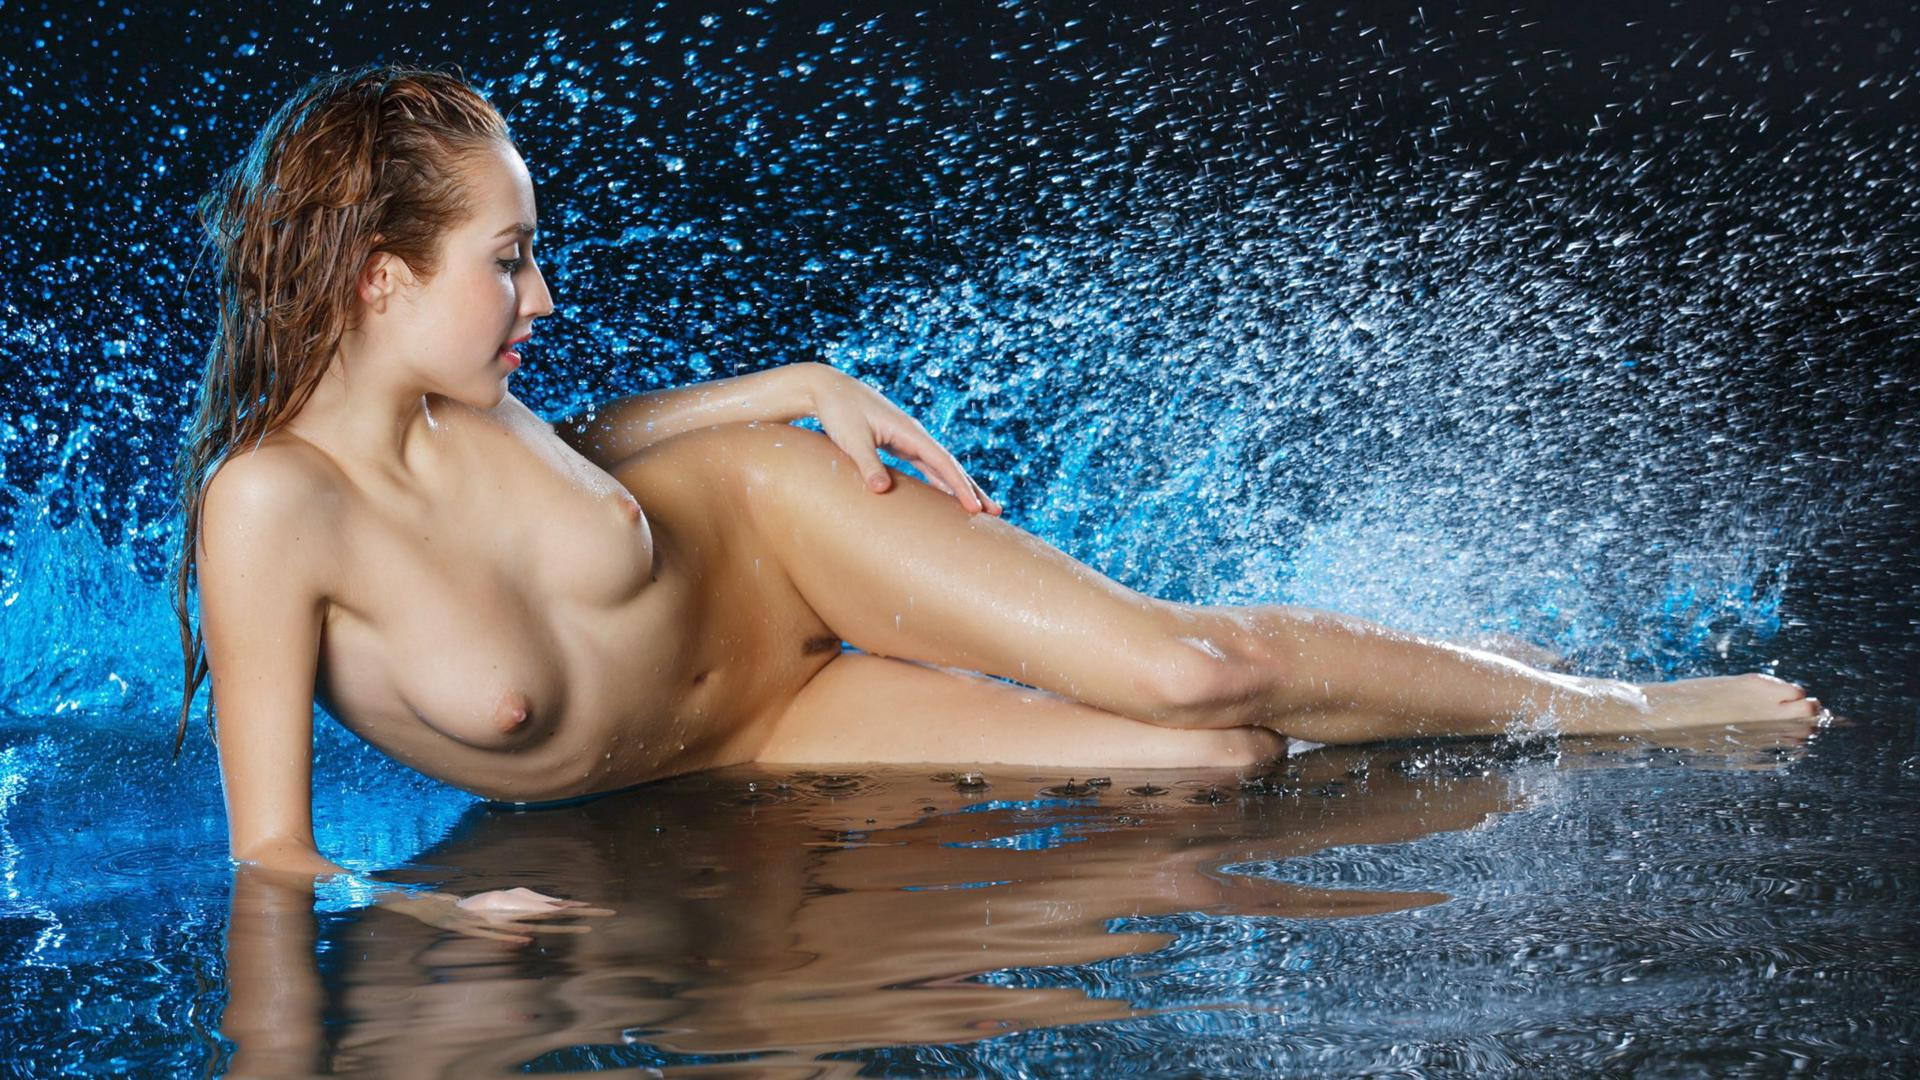 Pacific girls free galleries pics